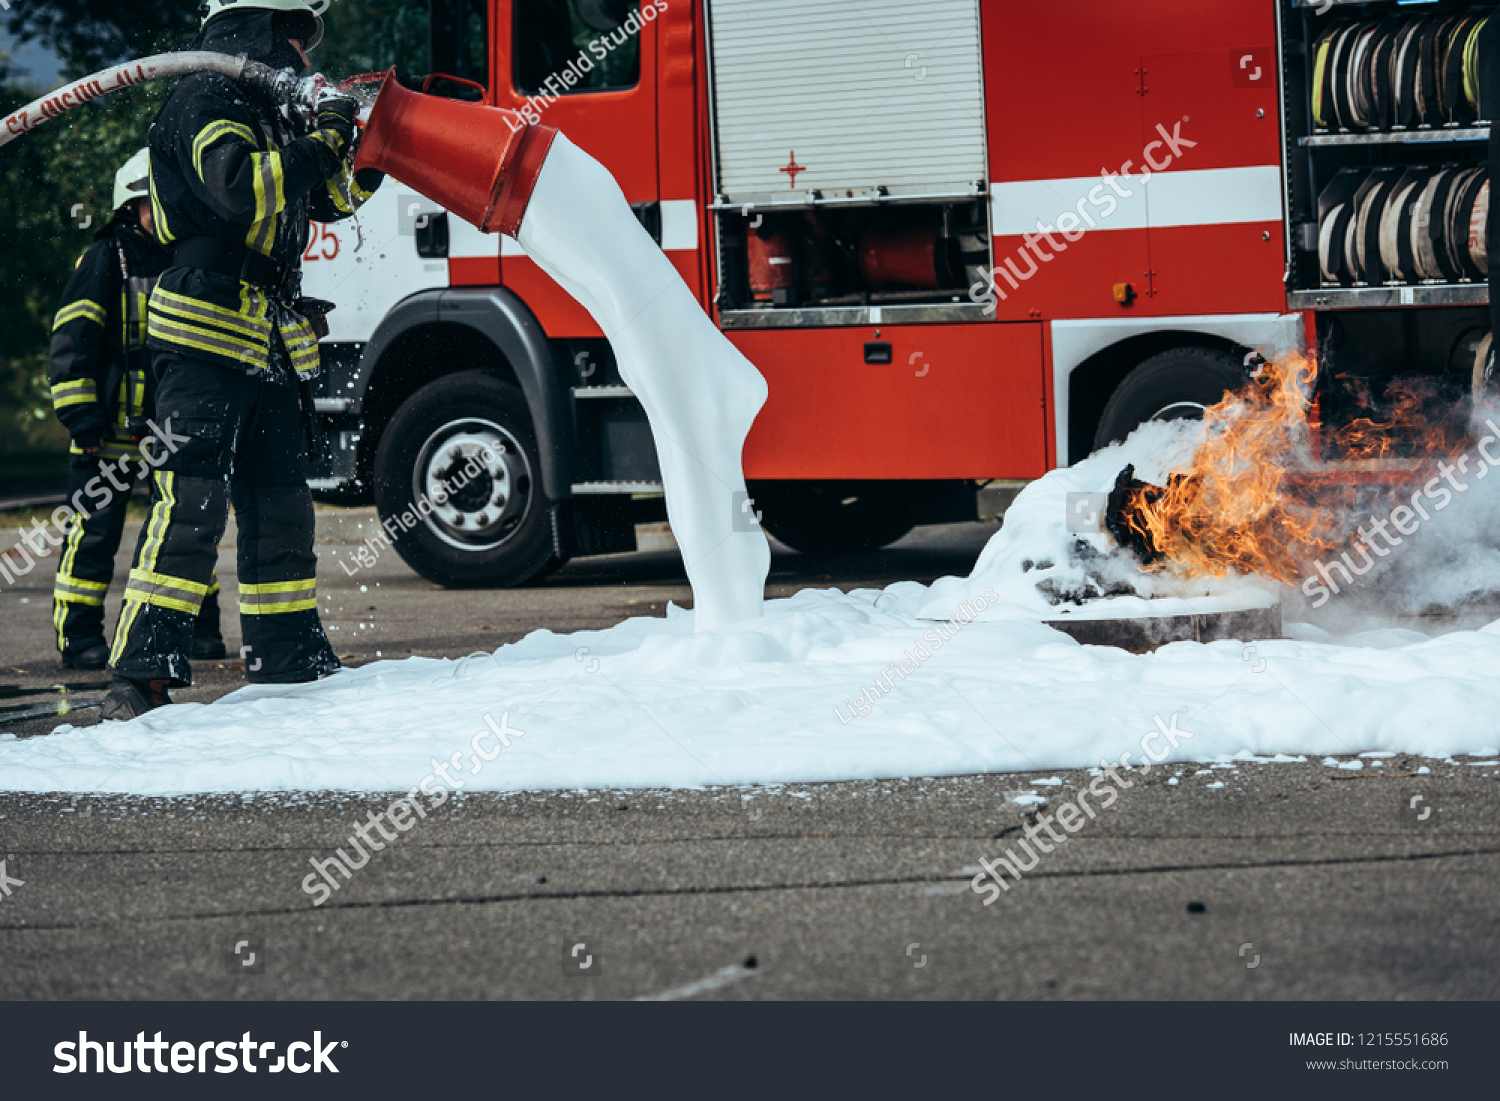 partial view of firefighter extinguishing fire with foam on street #1215551686